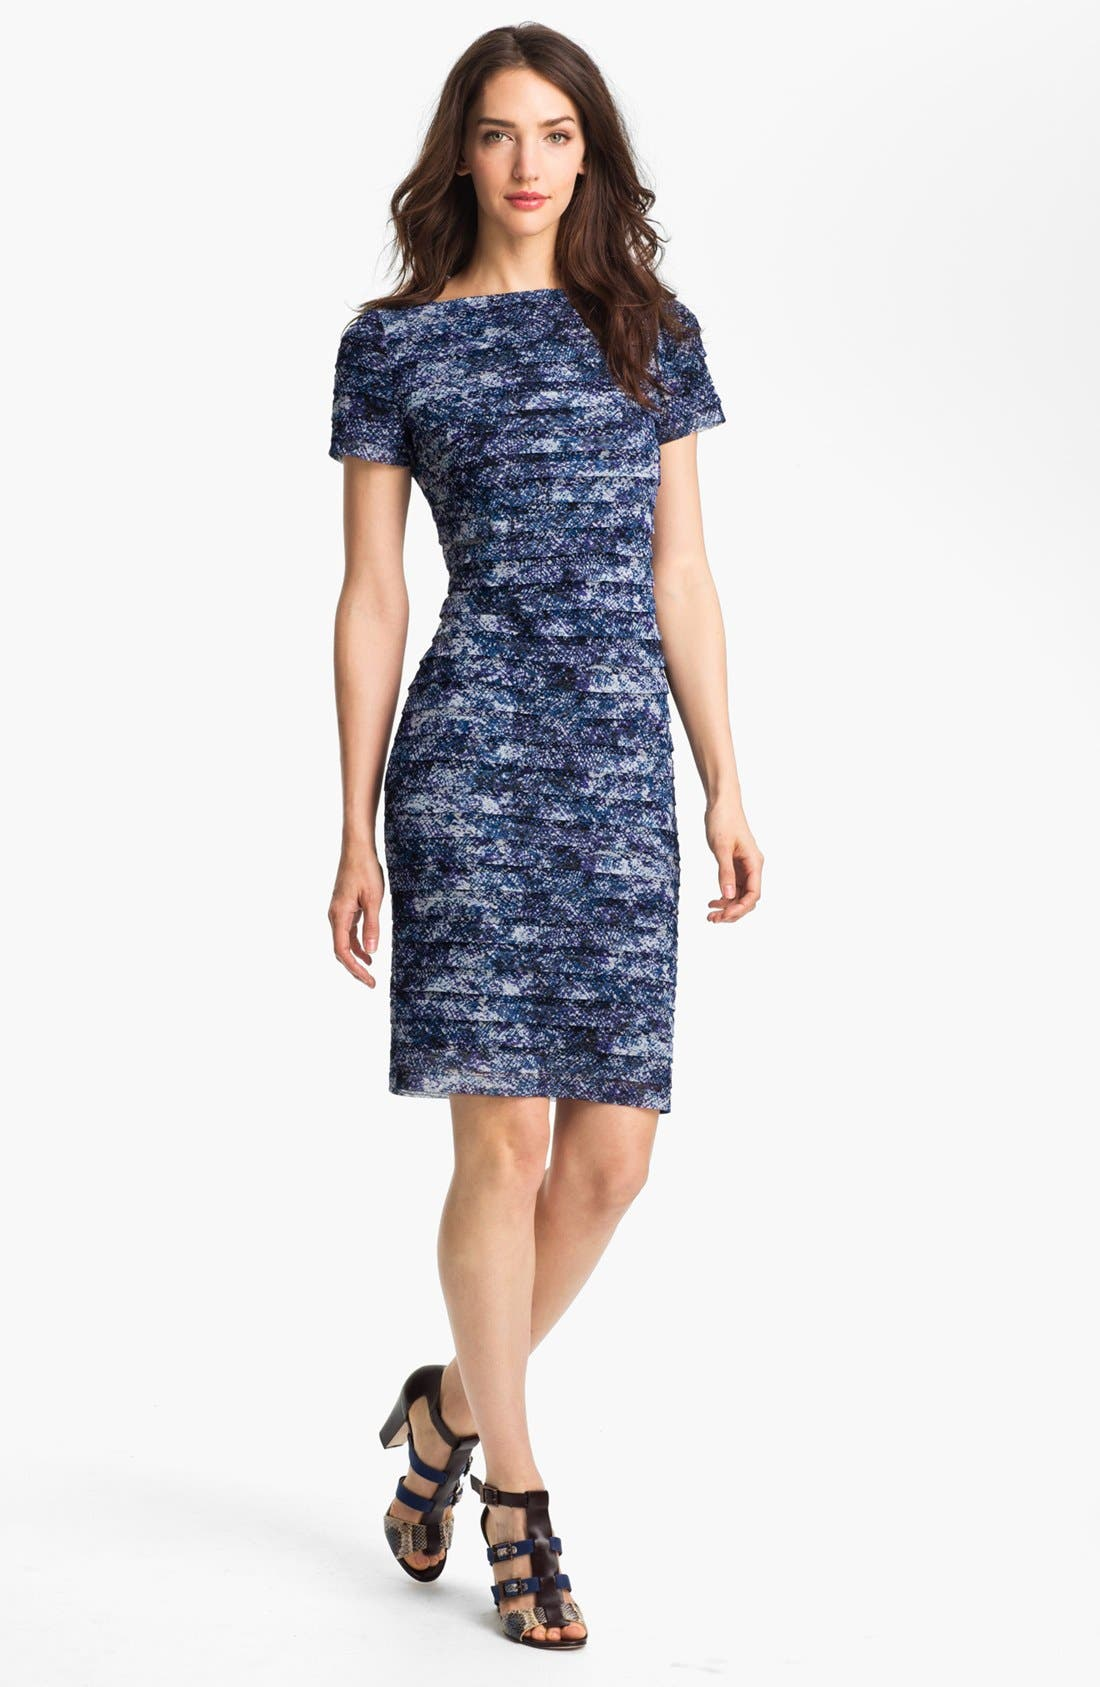 Alternate Image 1 Selected - Adrianna Papell Print Sheath Dress (Petite)